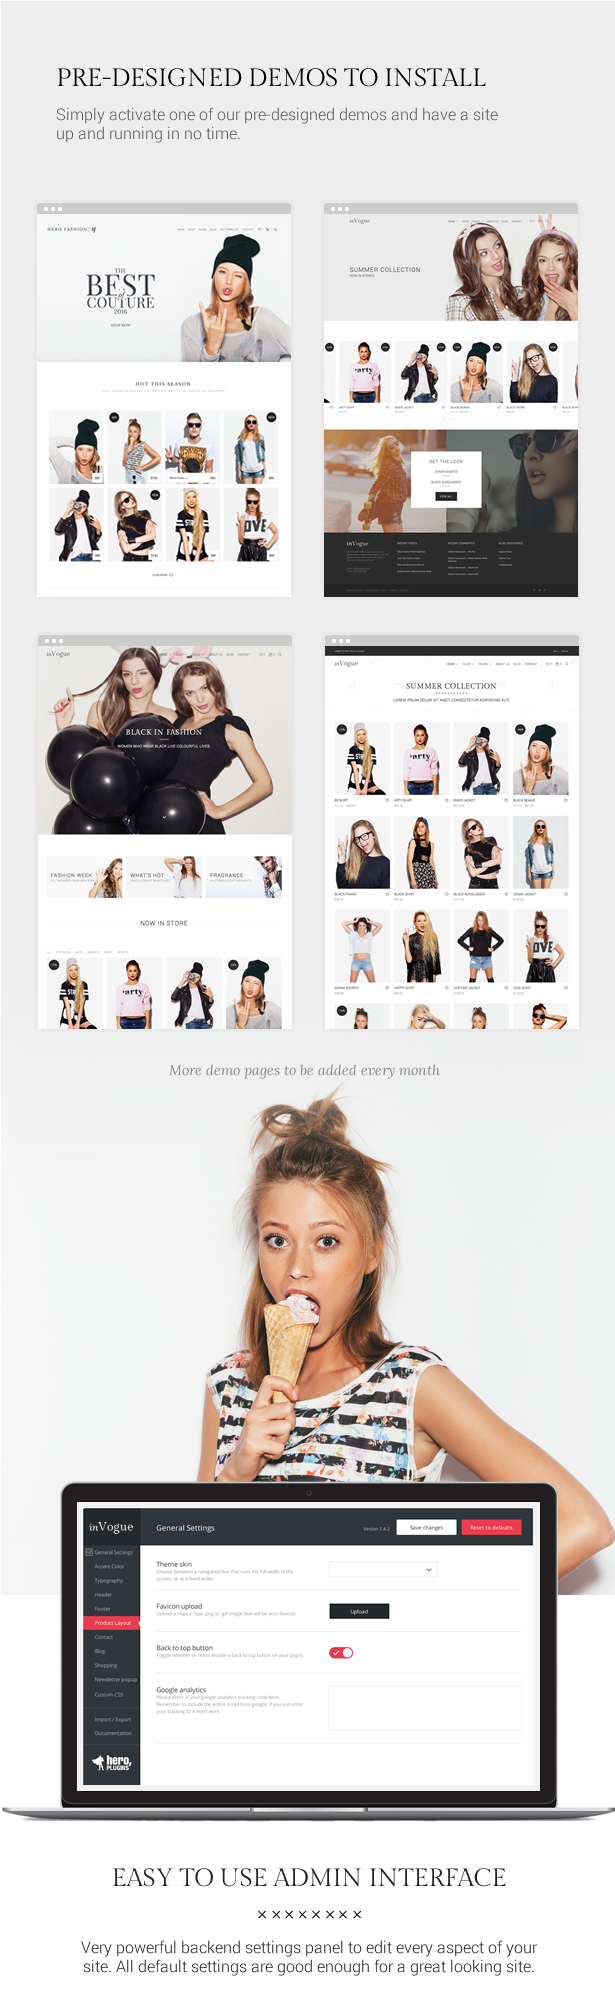 inVogue - WordPress Fashion Shopping Theme - 8